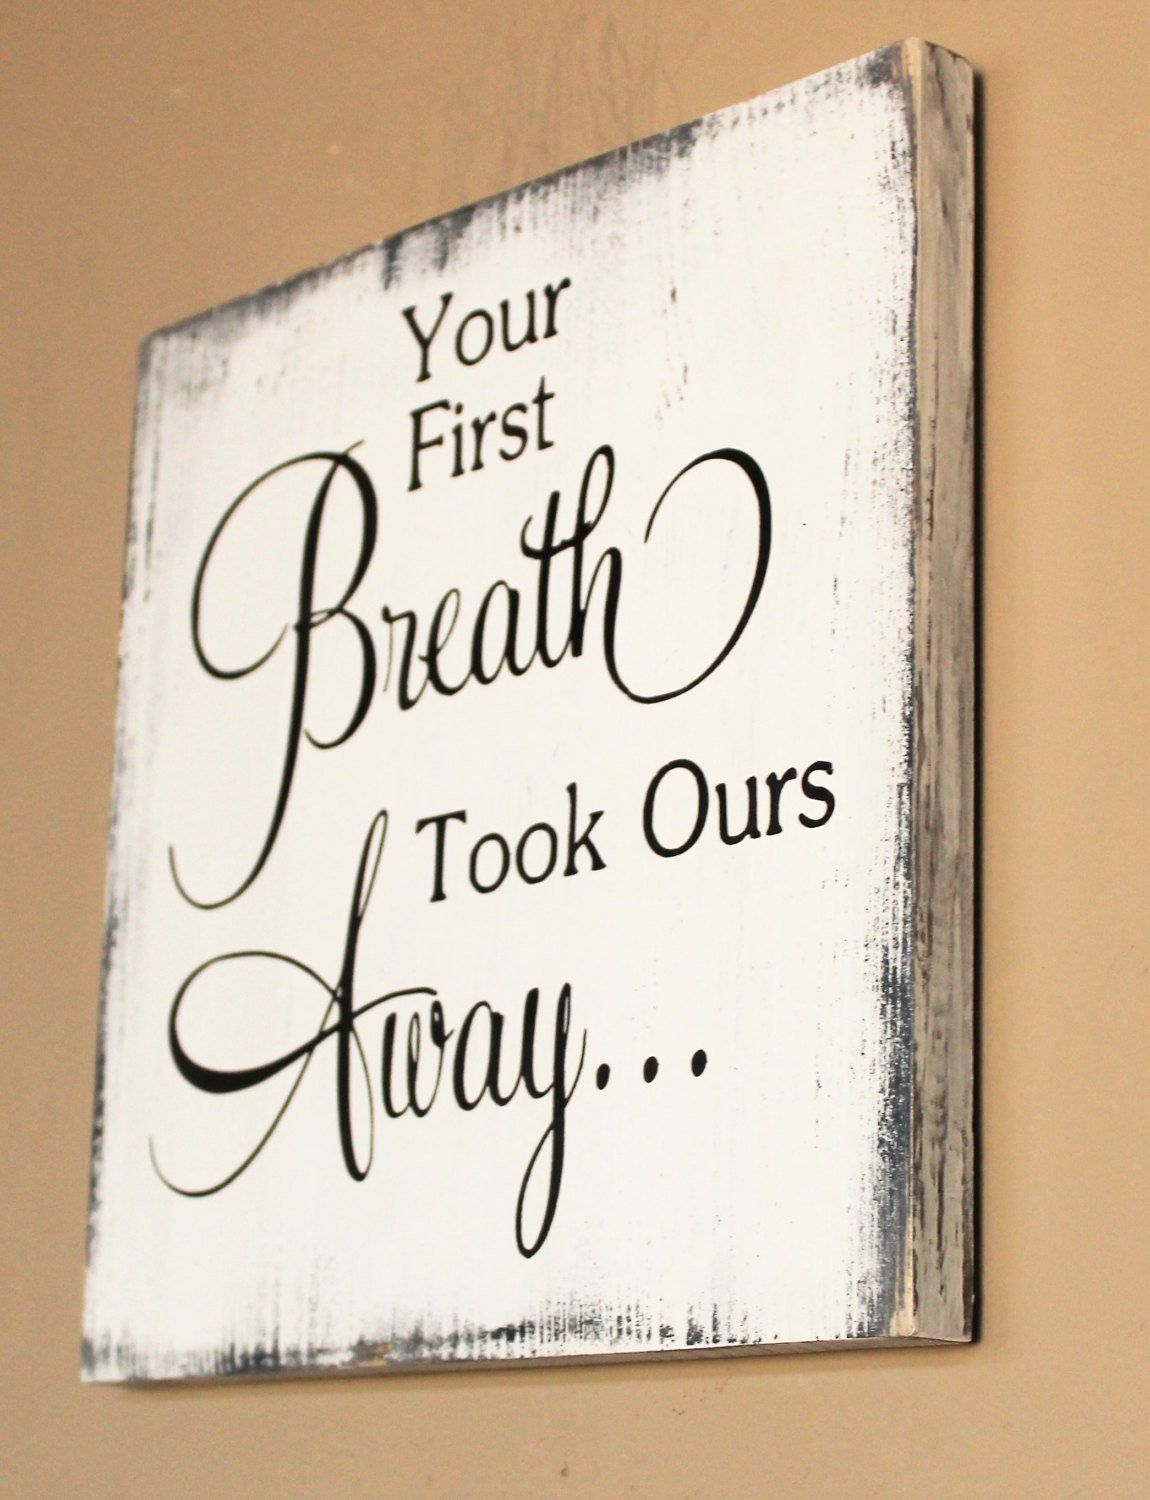 Your First Breath Took Ours Away Wood Sign Baby Shower Gifts Wall Art For Nursery Signs Gift By Gratefulheartdesign On